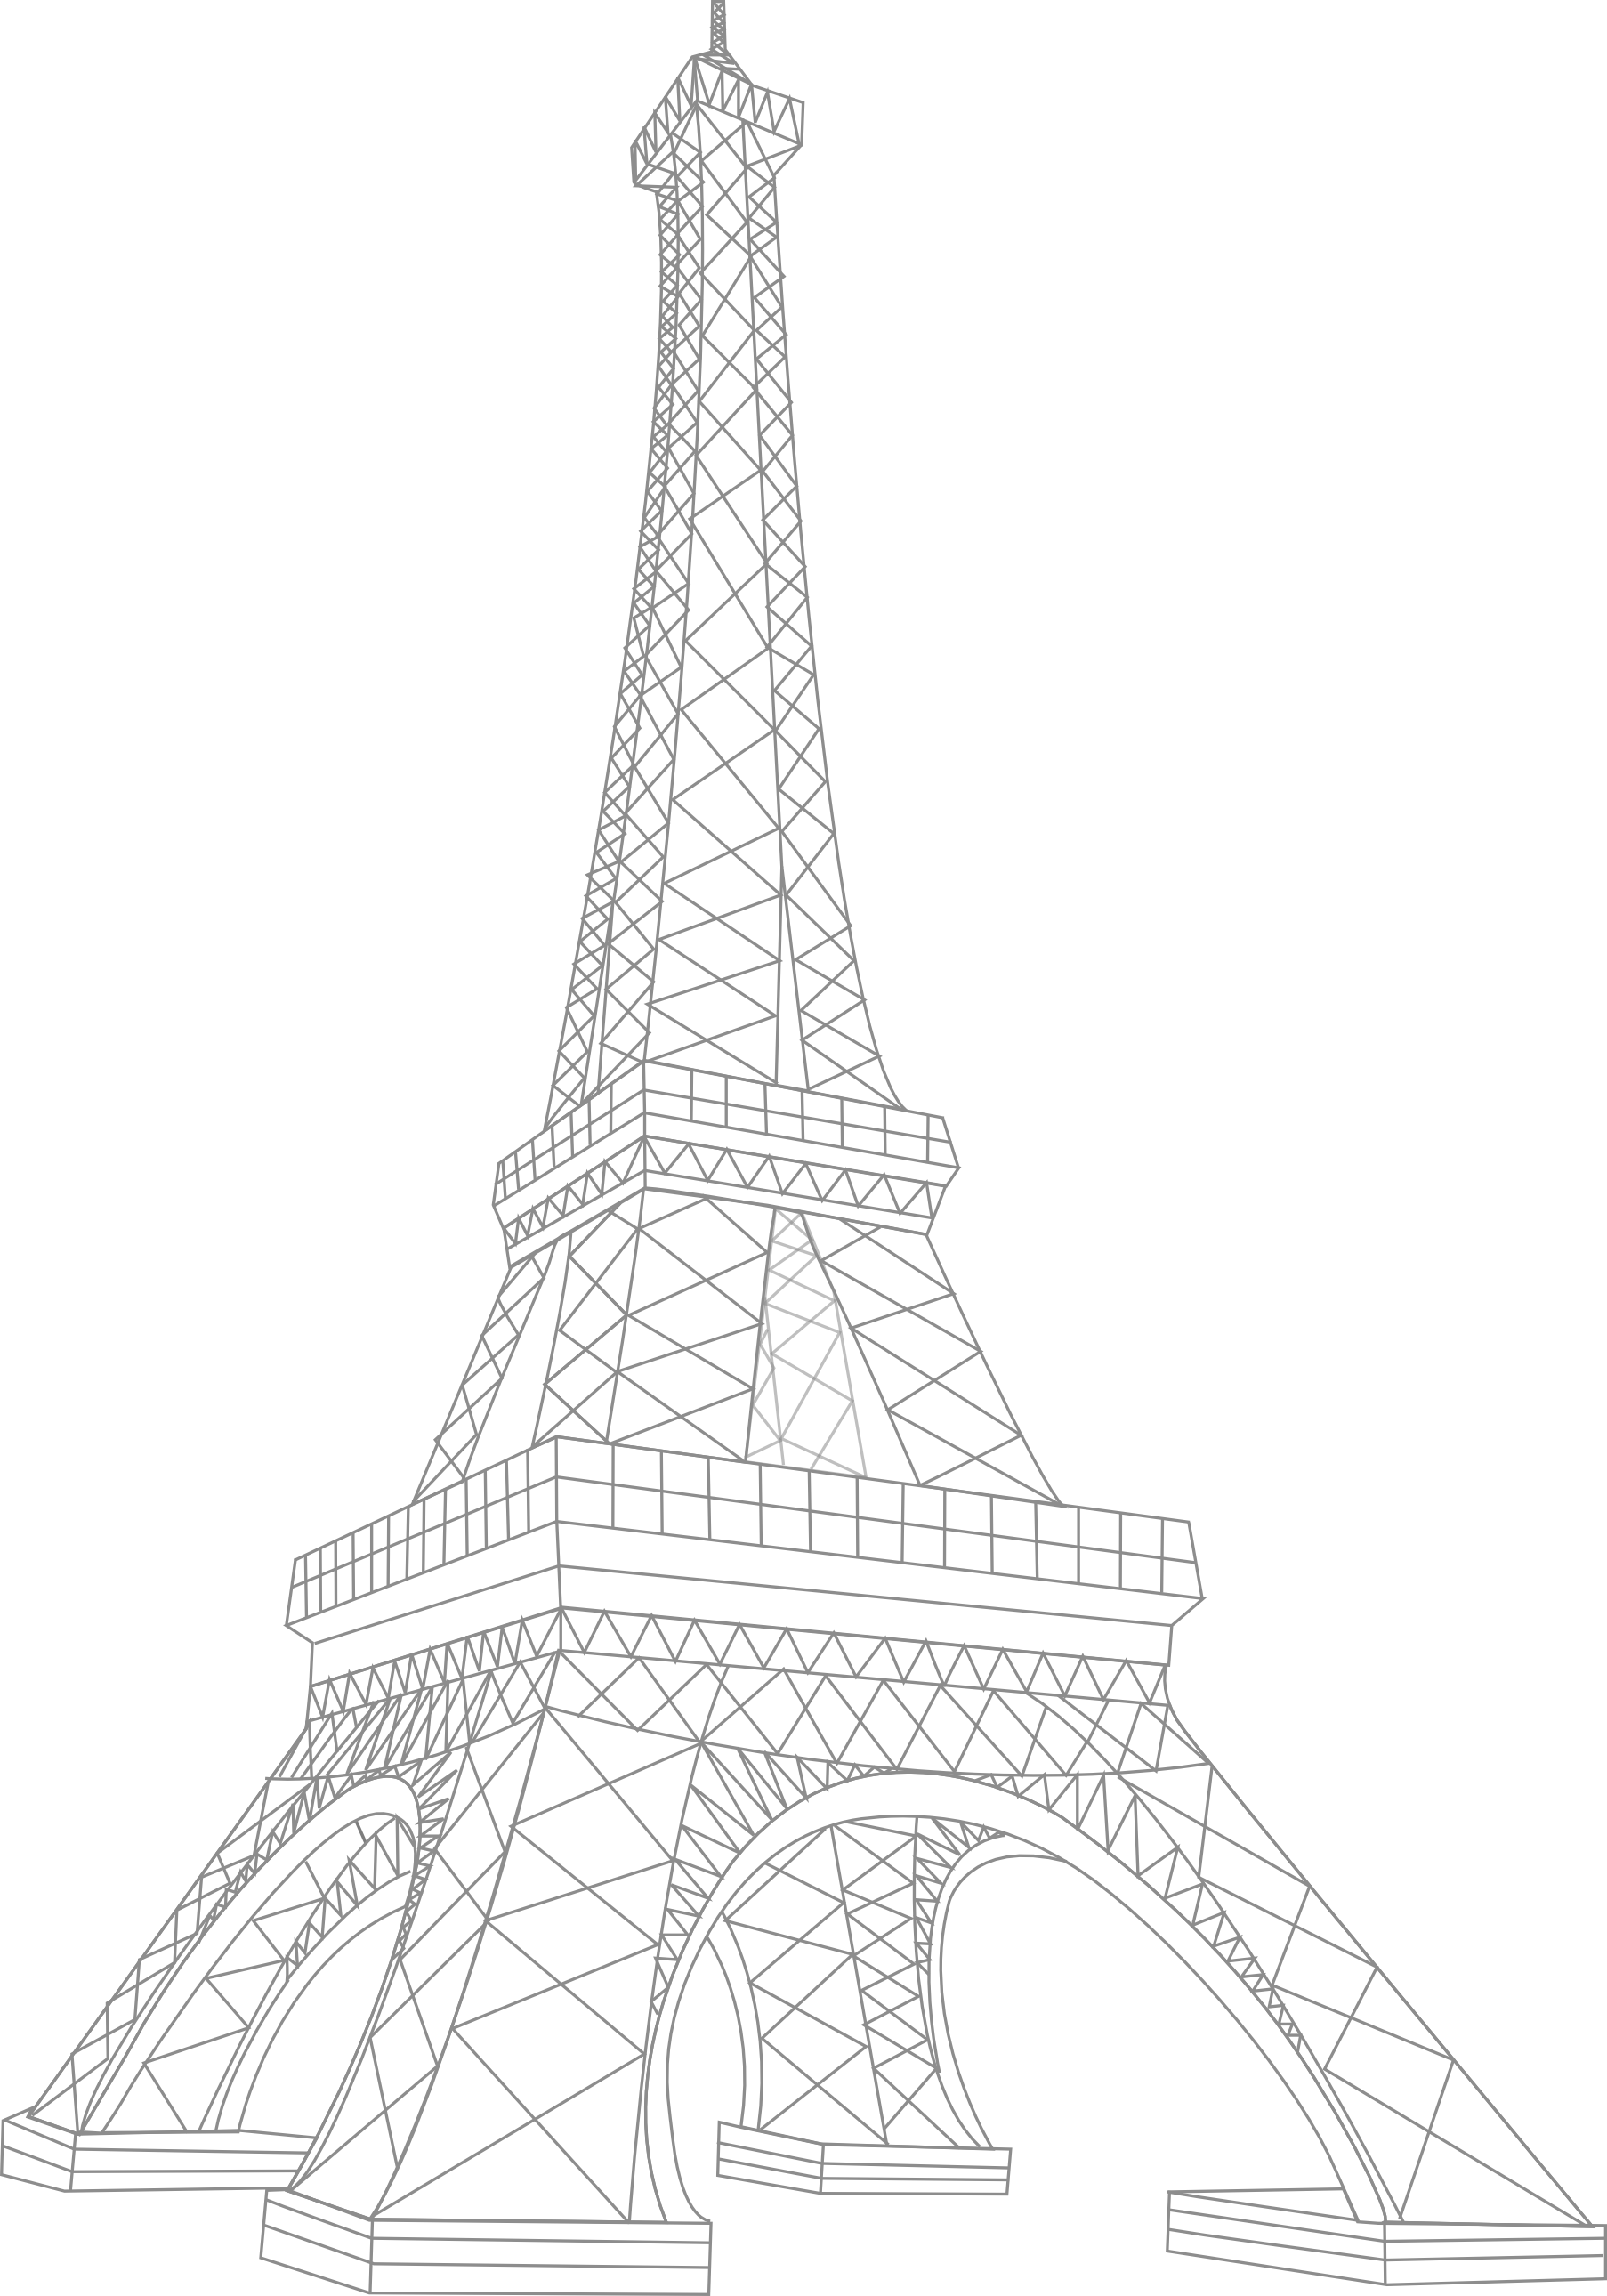 Eiffel tower with crown clipart png royalty free Eiffel Tower Drawing Easy at GetDrawings.com   Free for personal use ... png royalty free